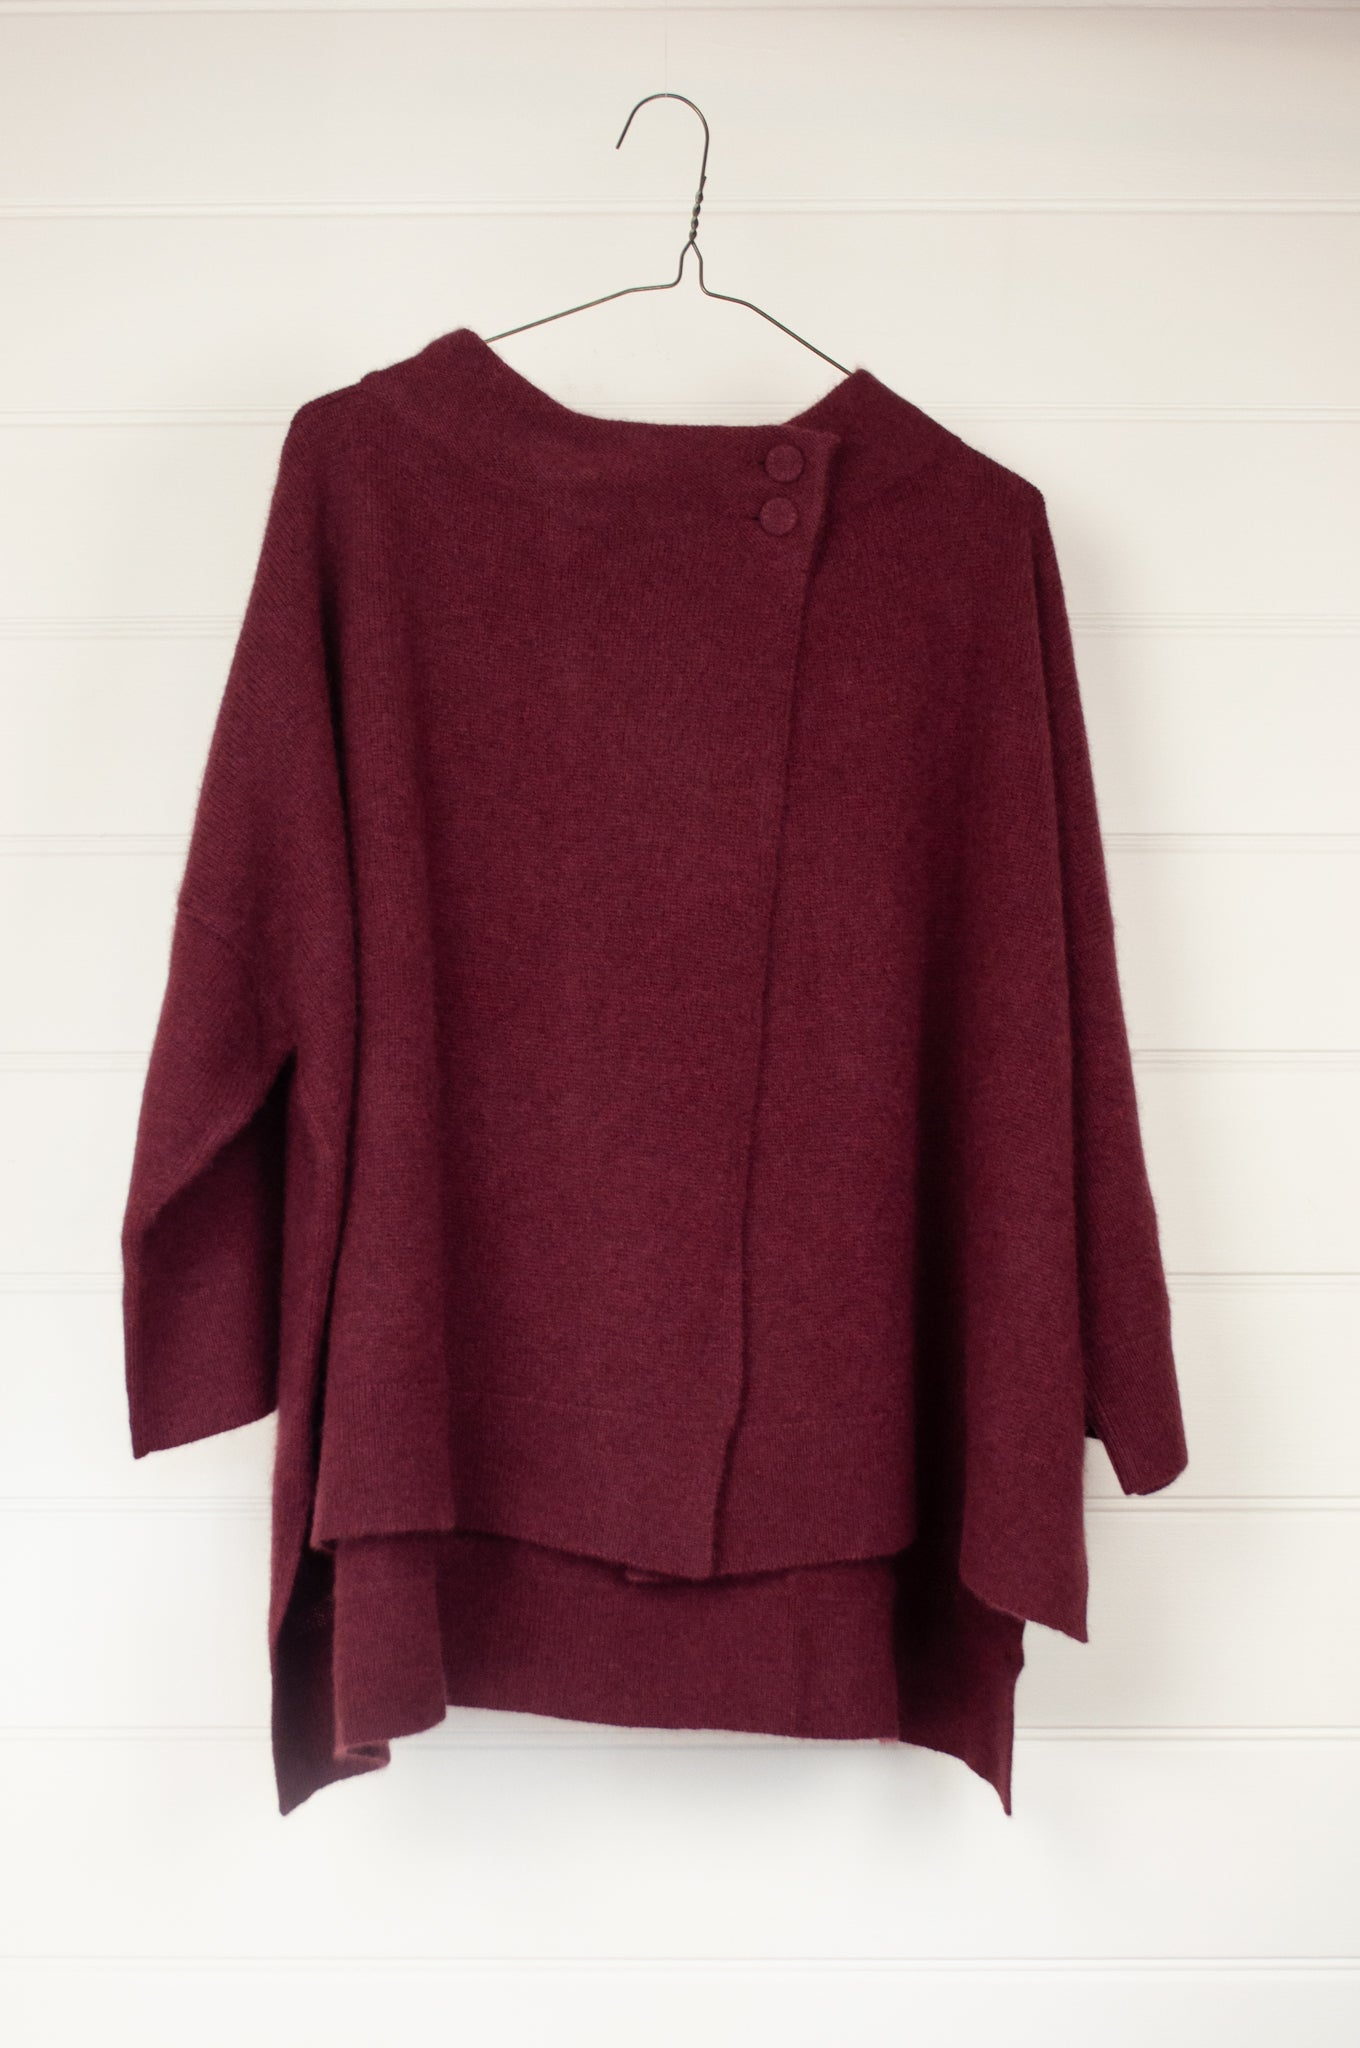 Baby yak wool Resha cardigan jacket, wide tunnel collar, overlap at from with two button closure at neck, kimono sleeves and side slits, boxy fit, in sangria, soft wine red.